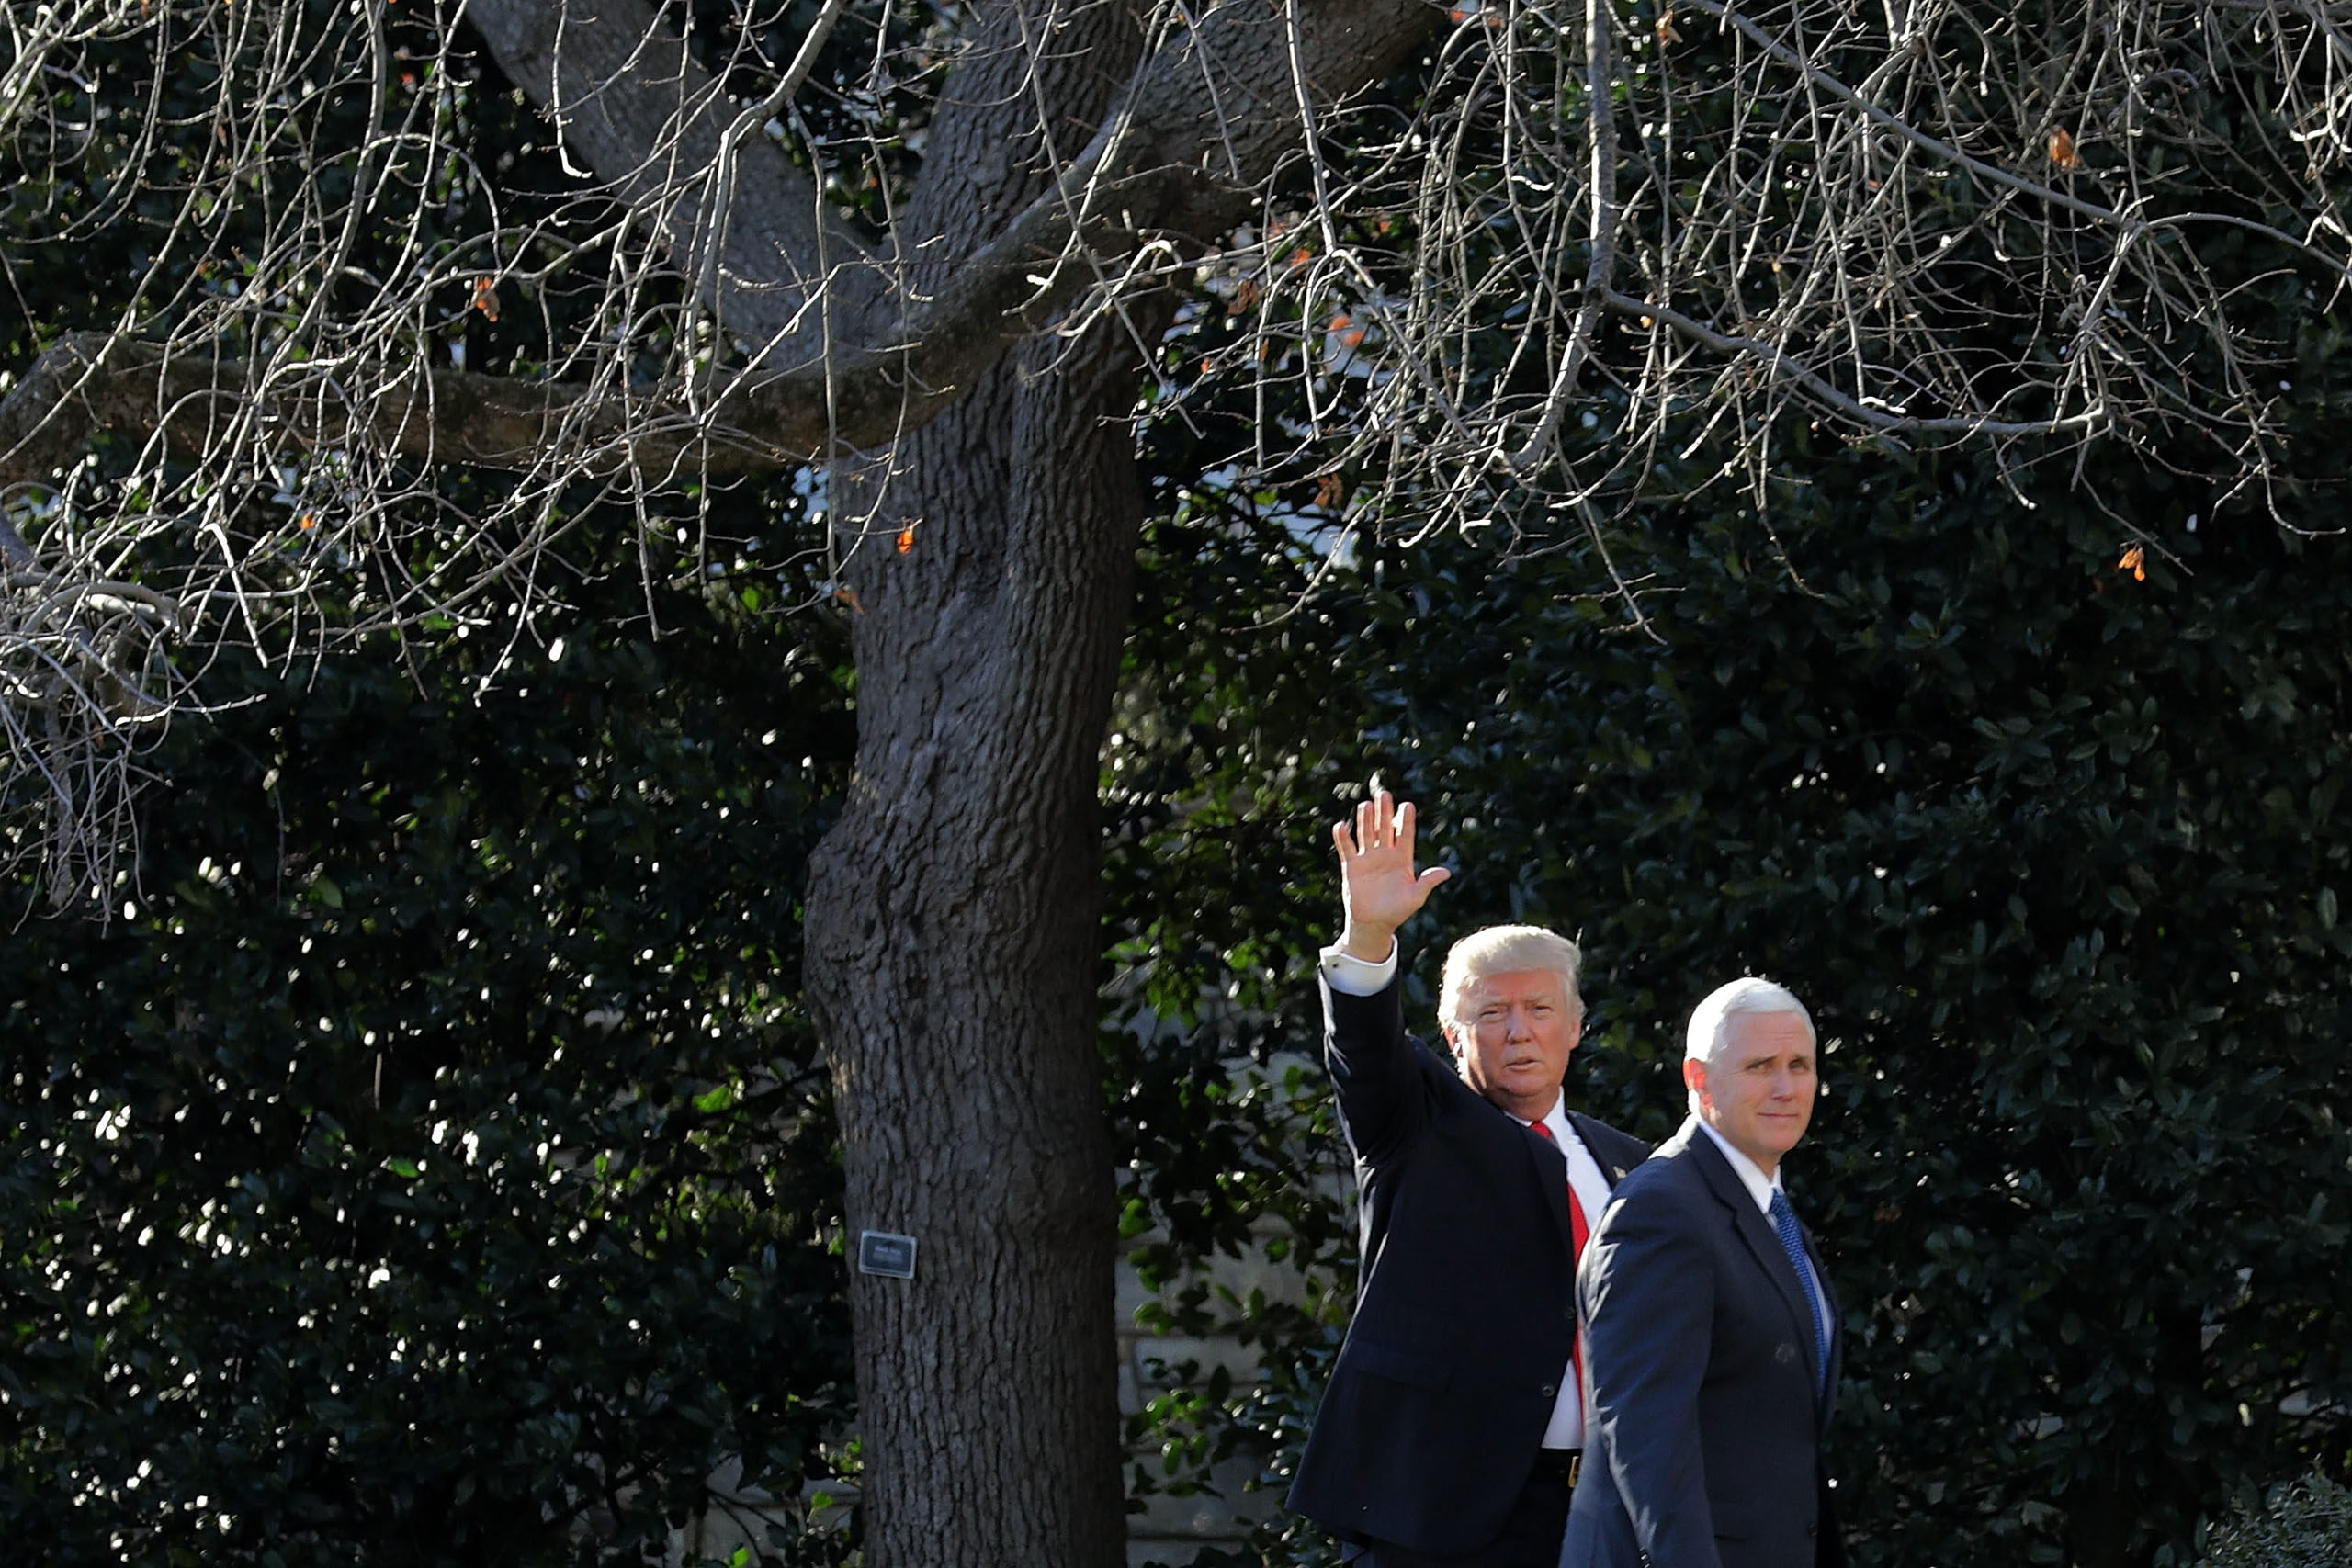 President Donald Trump and Vice President Mike Pence return to the White House after visiting the Department of Homeland Security in Washington, on Jan. 25, 2017.